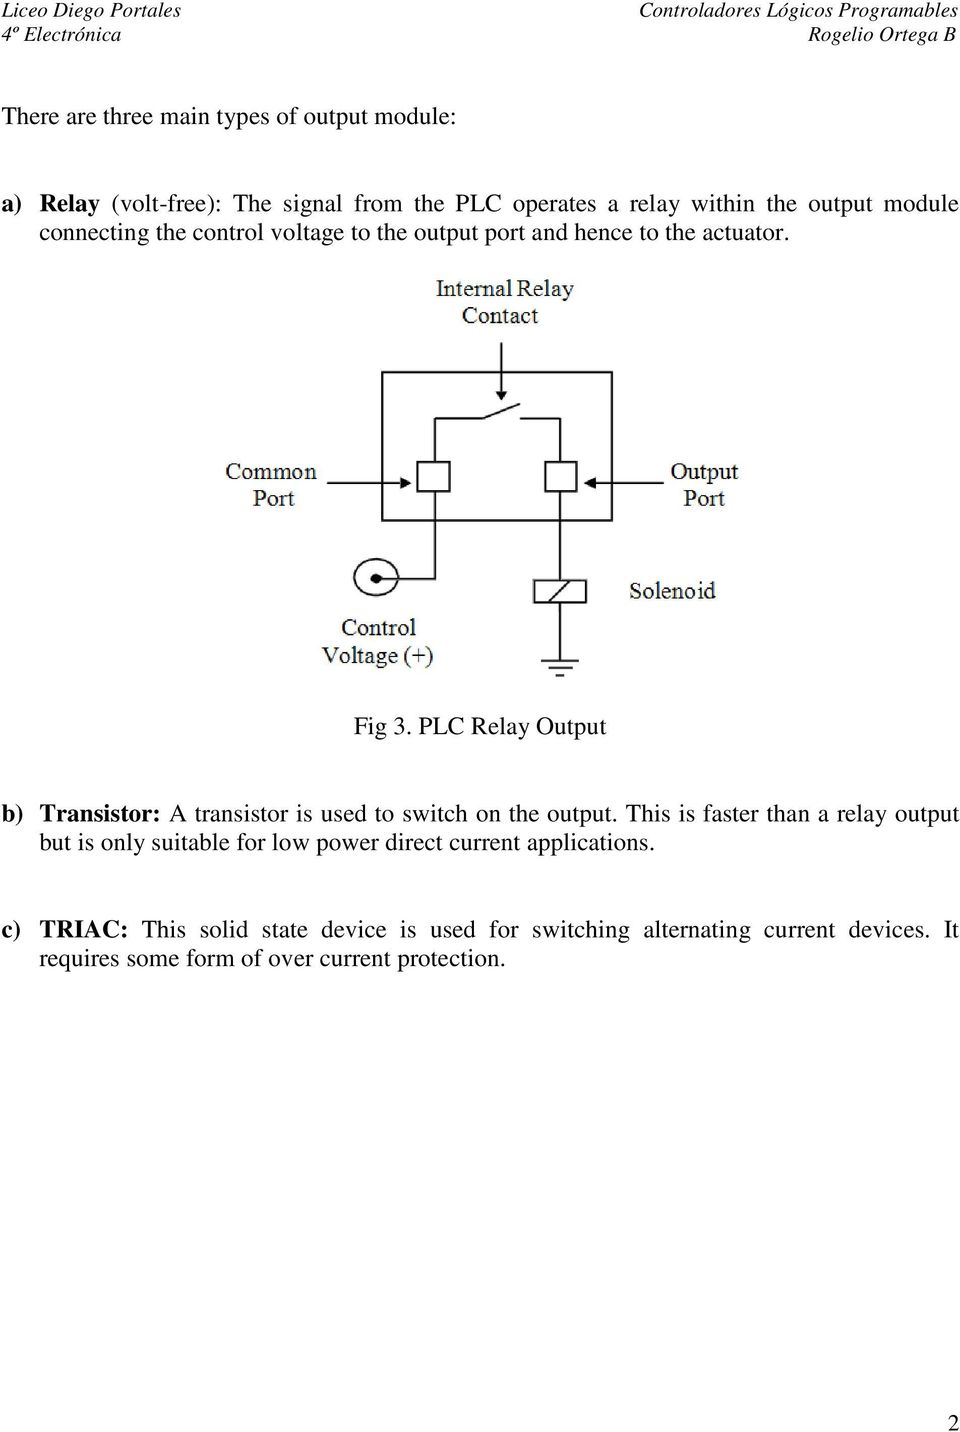 hight resolution of plc relay output b transistor a transistor is used to switch on the output